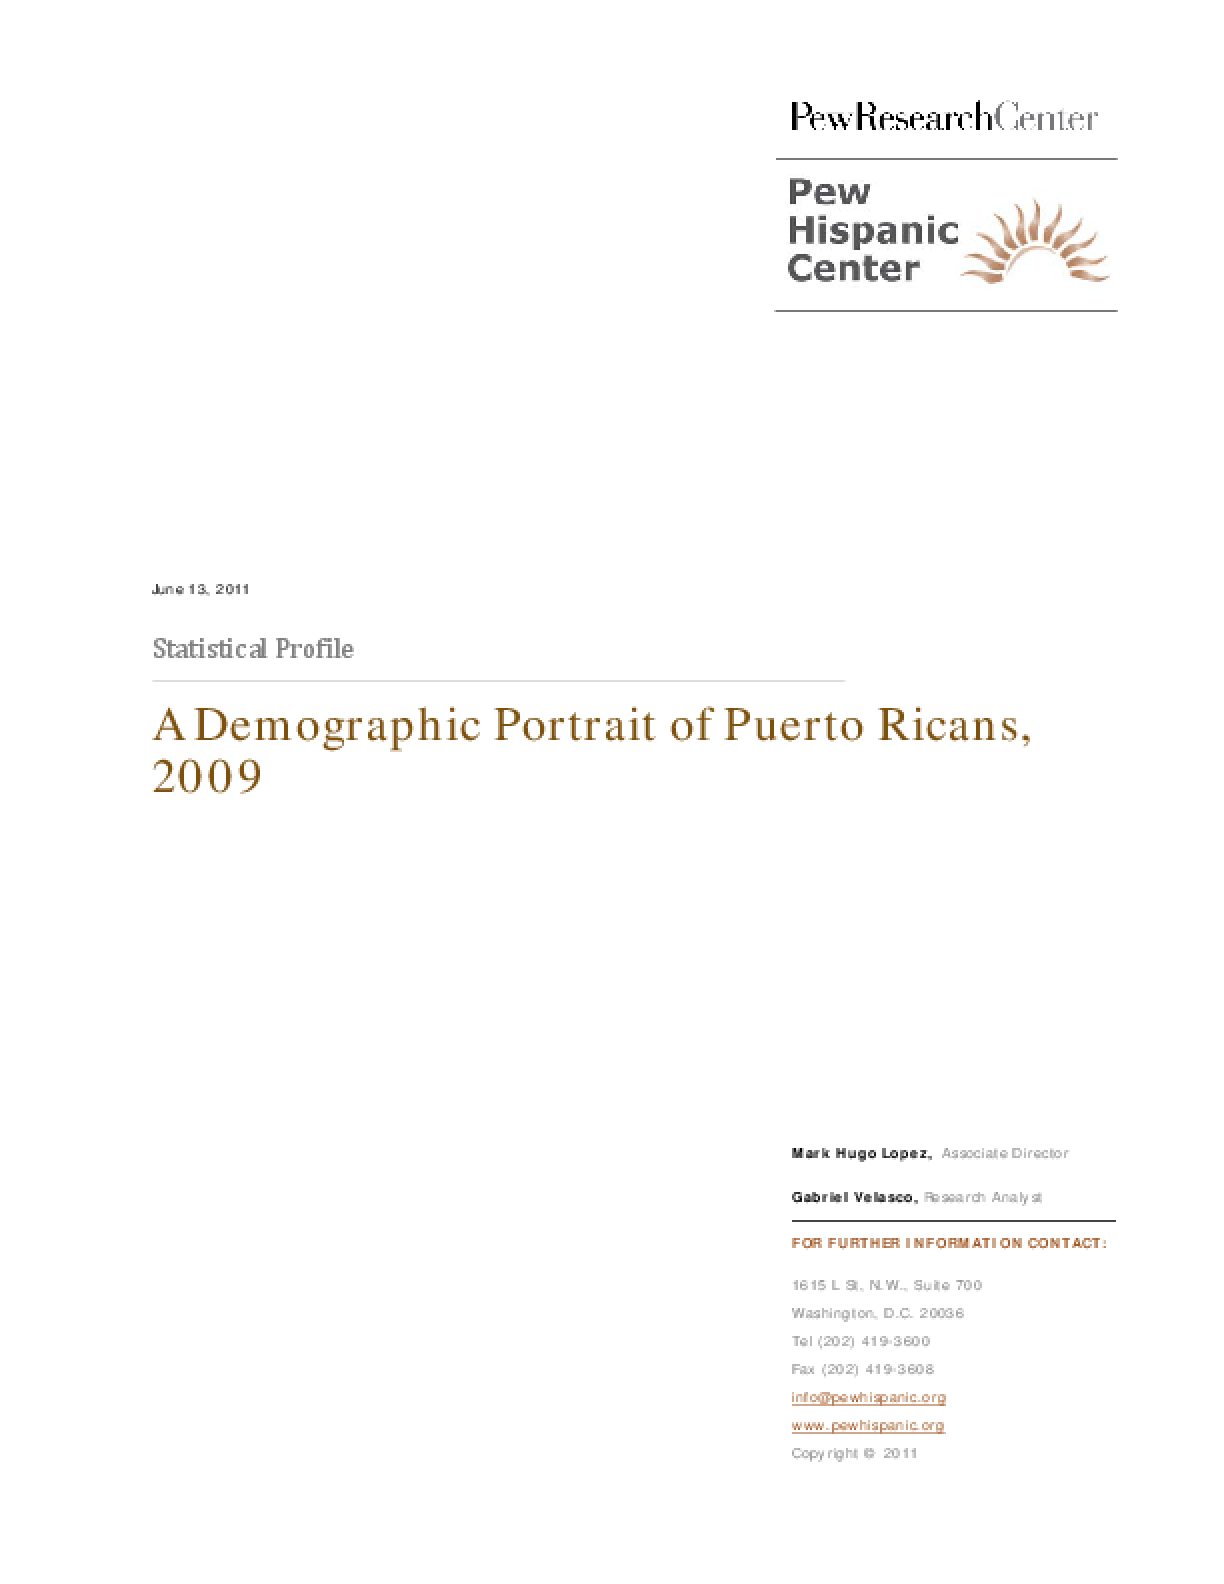 A Demographic Portrait of Hispanics in Puerto Rico